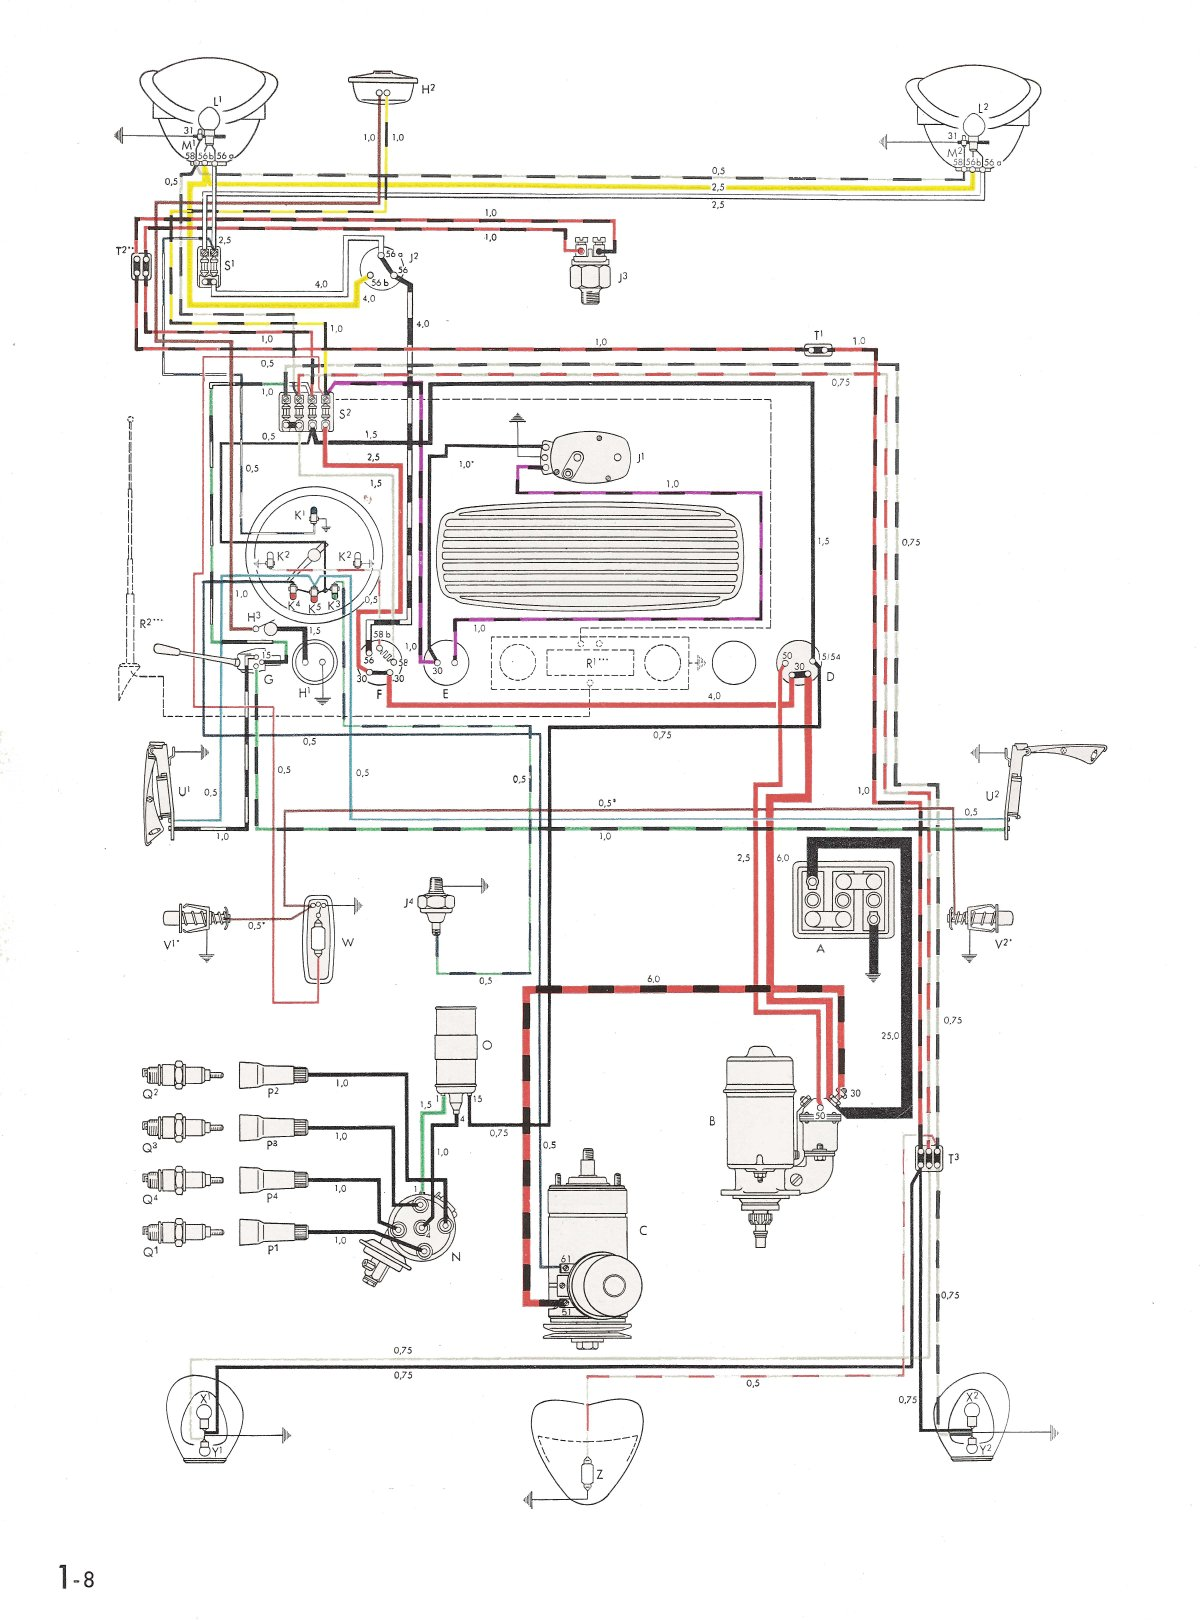 74 Vw Super Beetle Wiring Diagram The Portal And Forum Of Fuse Box For 1974 Thesamba Com Type 1 Diagrams Rh 1972